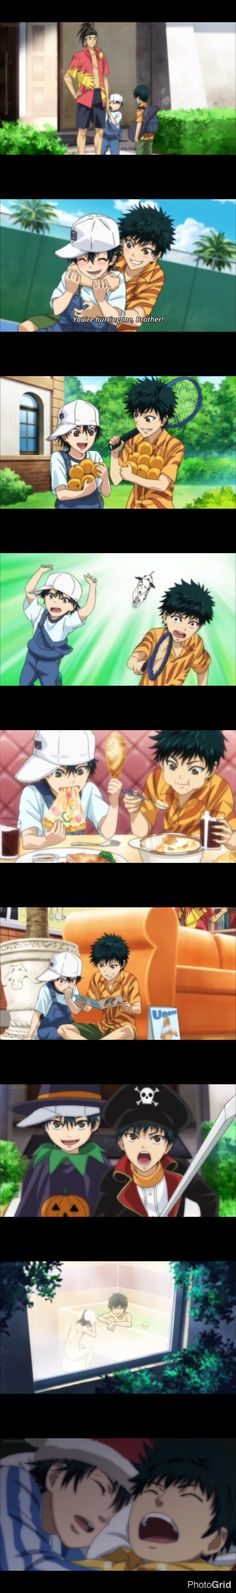 New Prince of tennis: Ryoma and Ryoga Echizen. jme